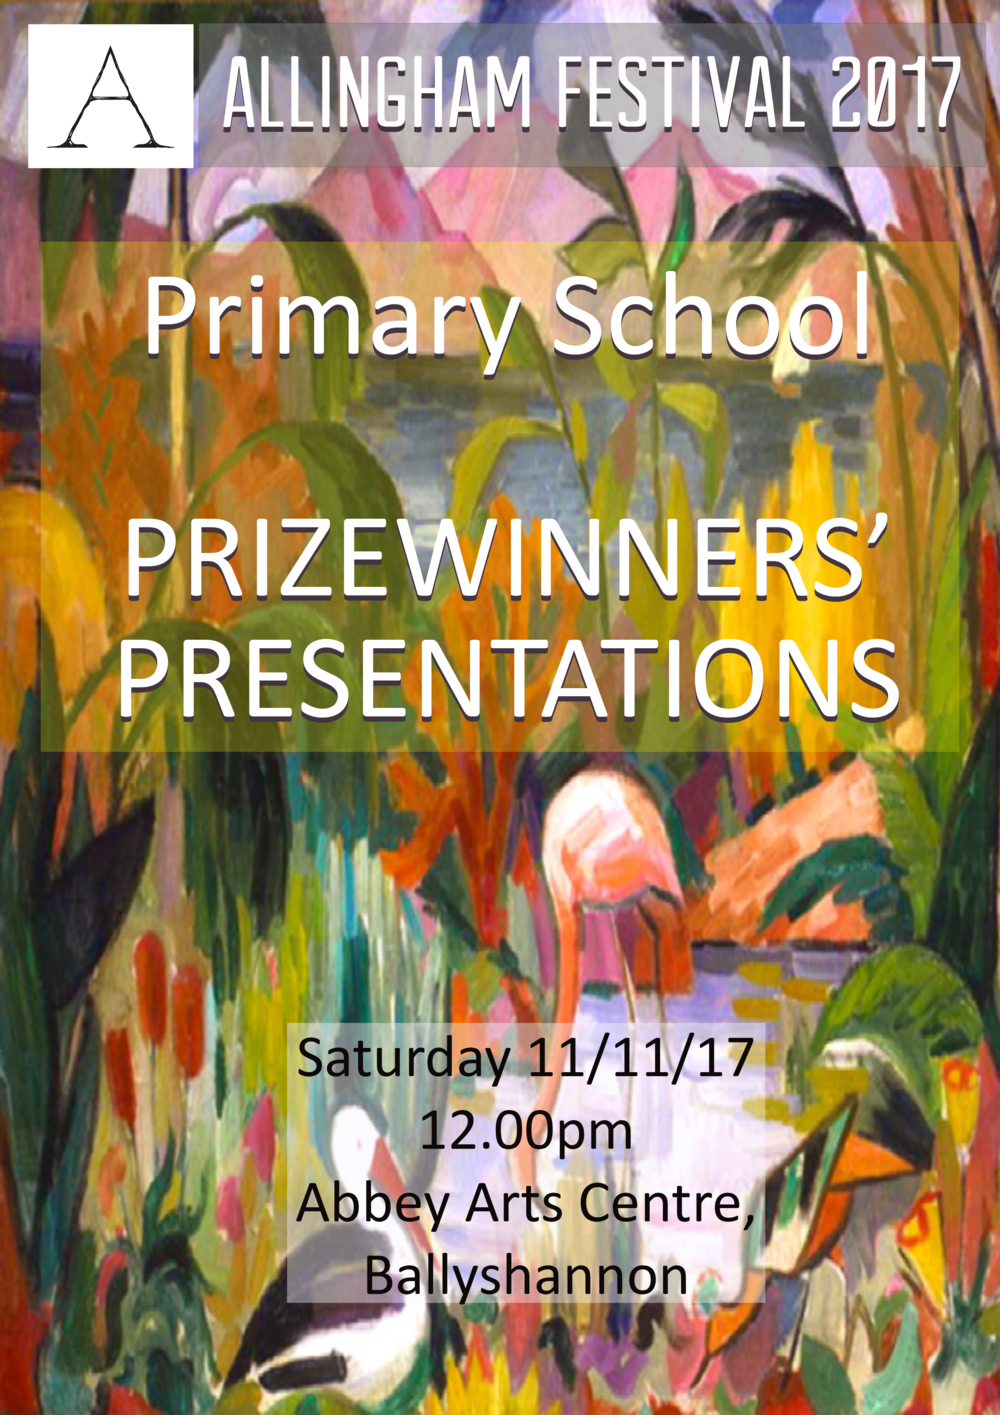 Primary School Presentations Poster.png